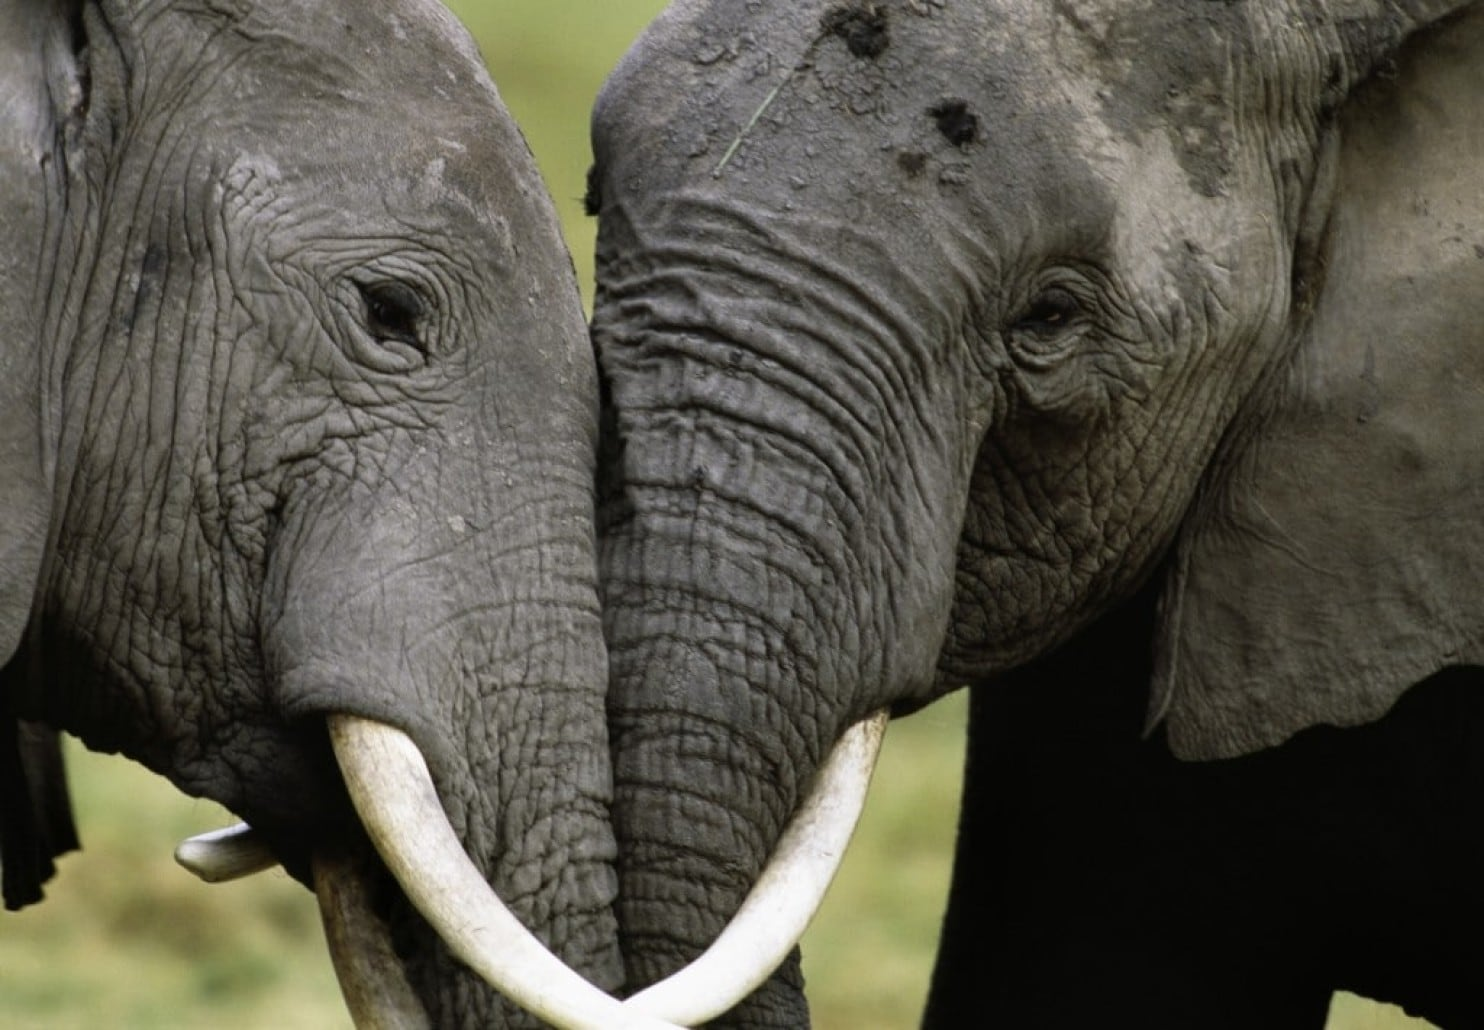 Poachers slammed with 80 year sentence for illegal poaching